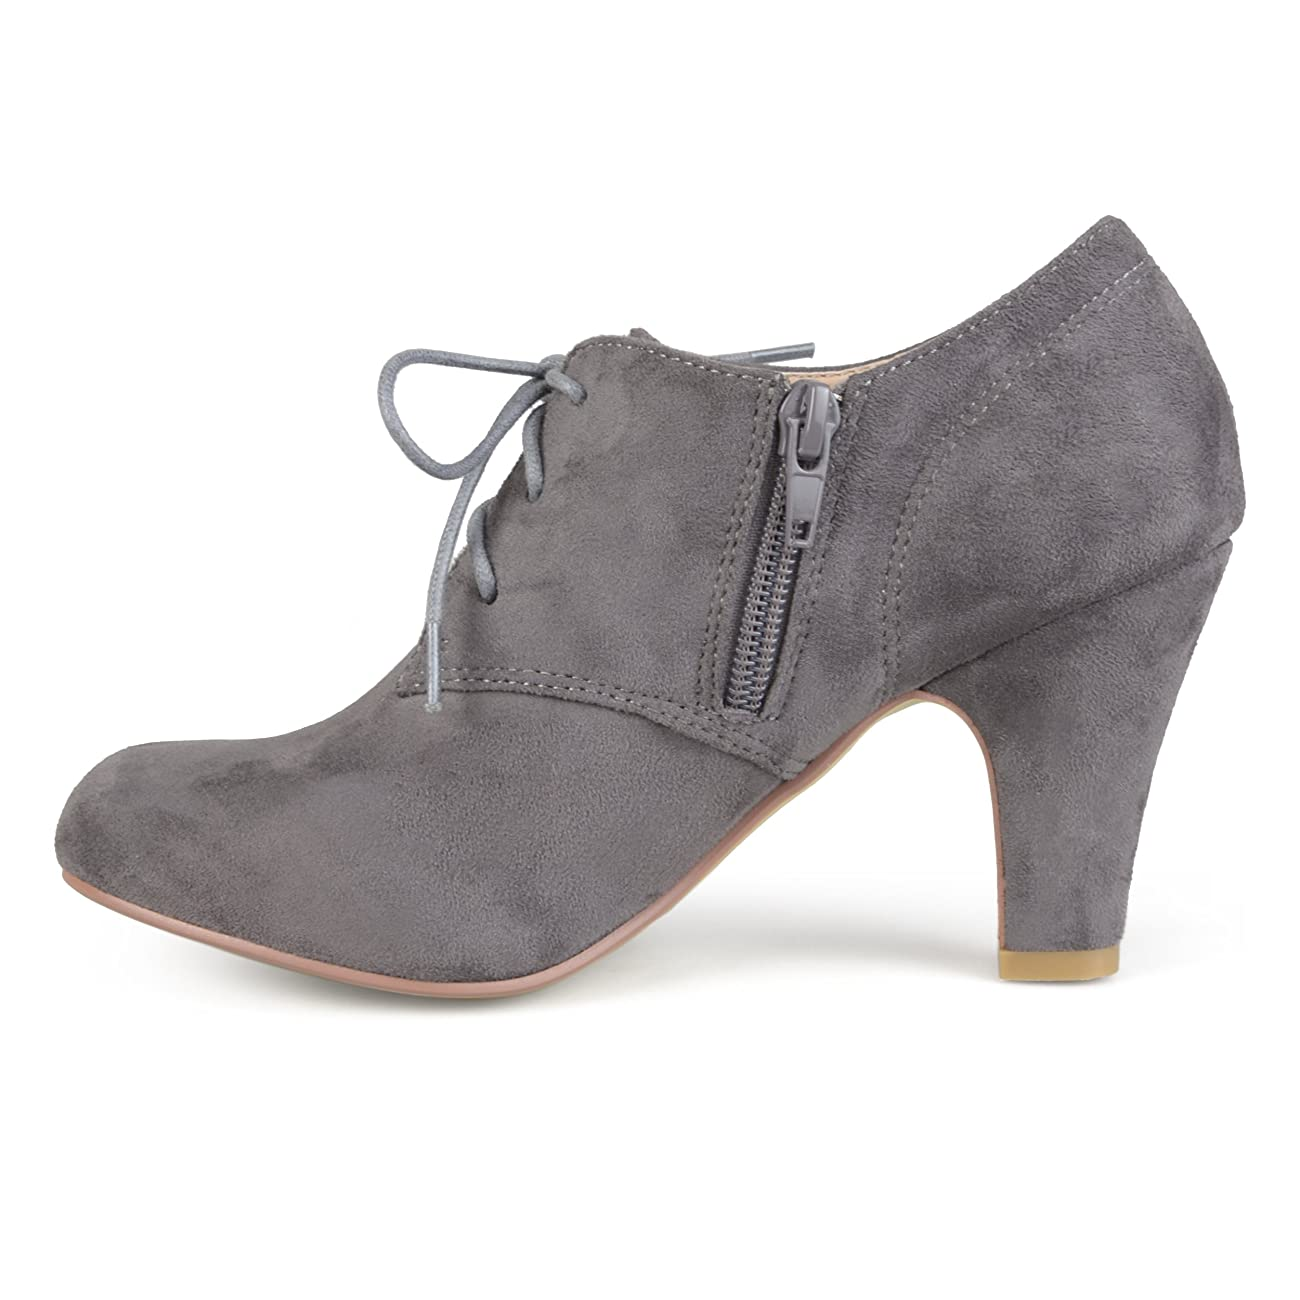 Brinley Co. Womens Vintage Round Toe High Heel Lace-up Faux Suede Booties 2